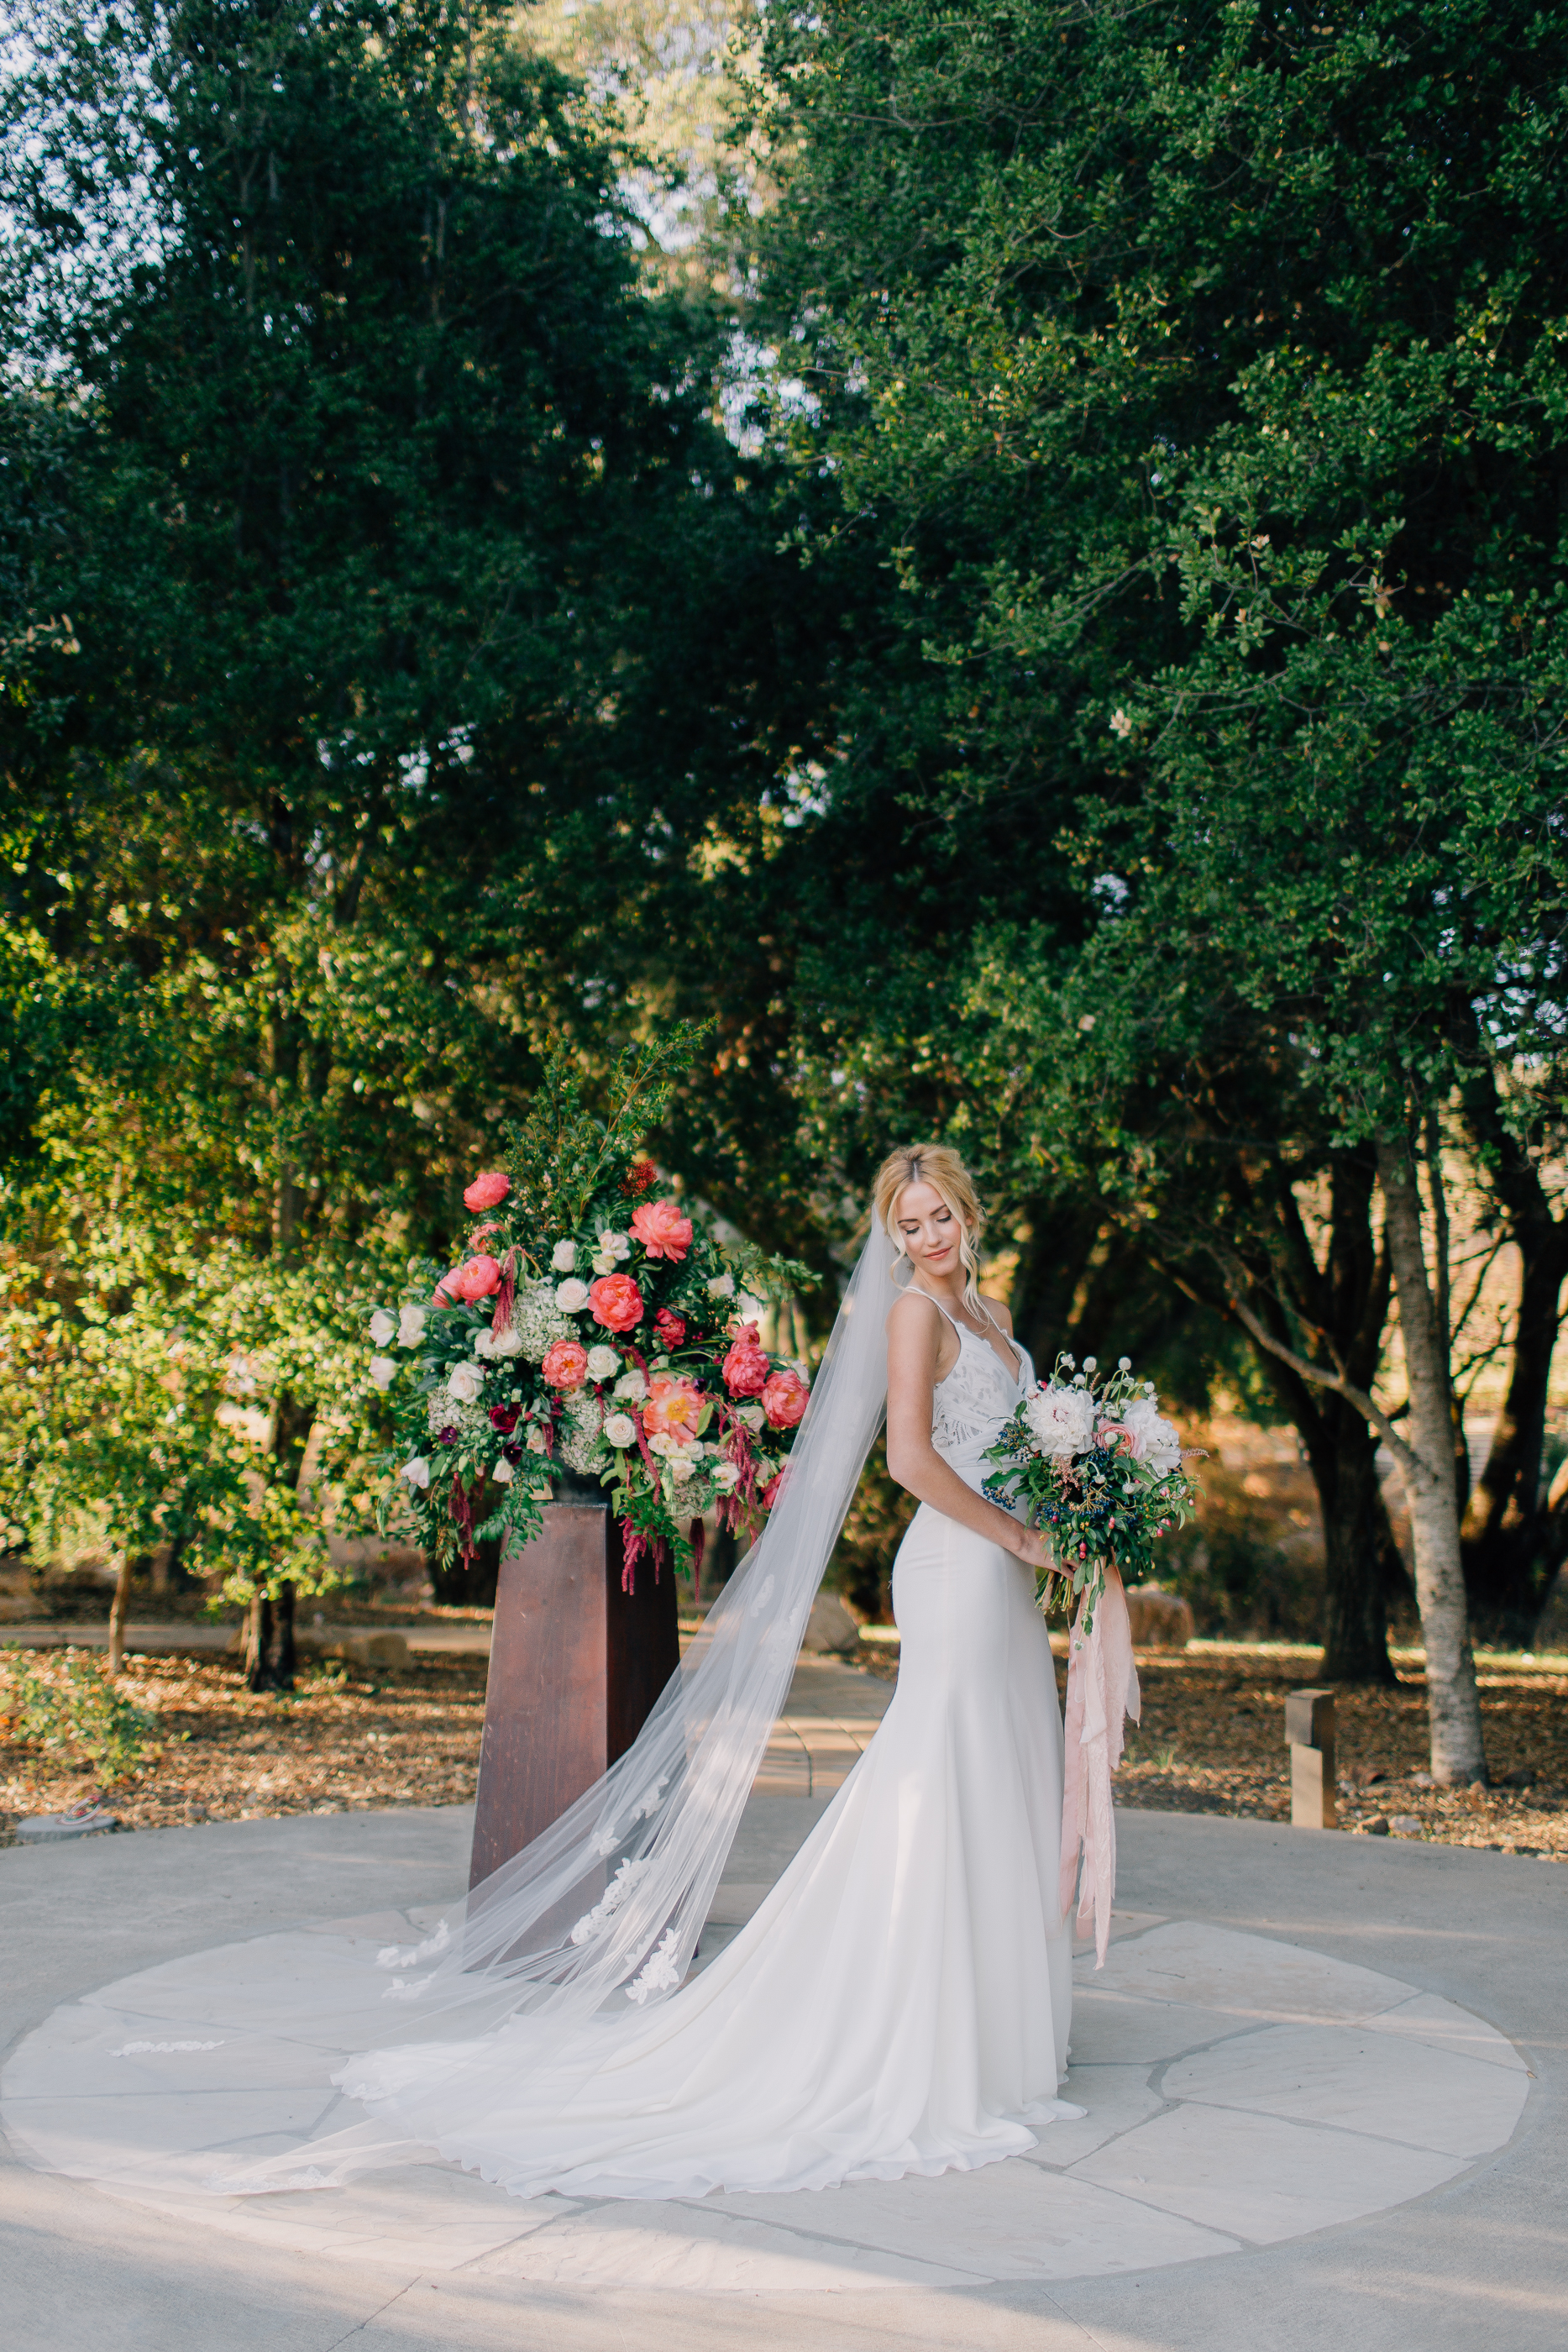 Nestled Beneath A Canopy Of Ancient California Oaks Amidst Shimmering Vineyards Lies Unsurped Wedding Venue That Will Be Sure To Impress The Most